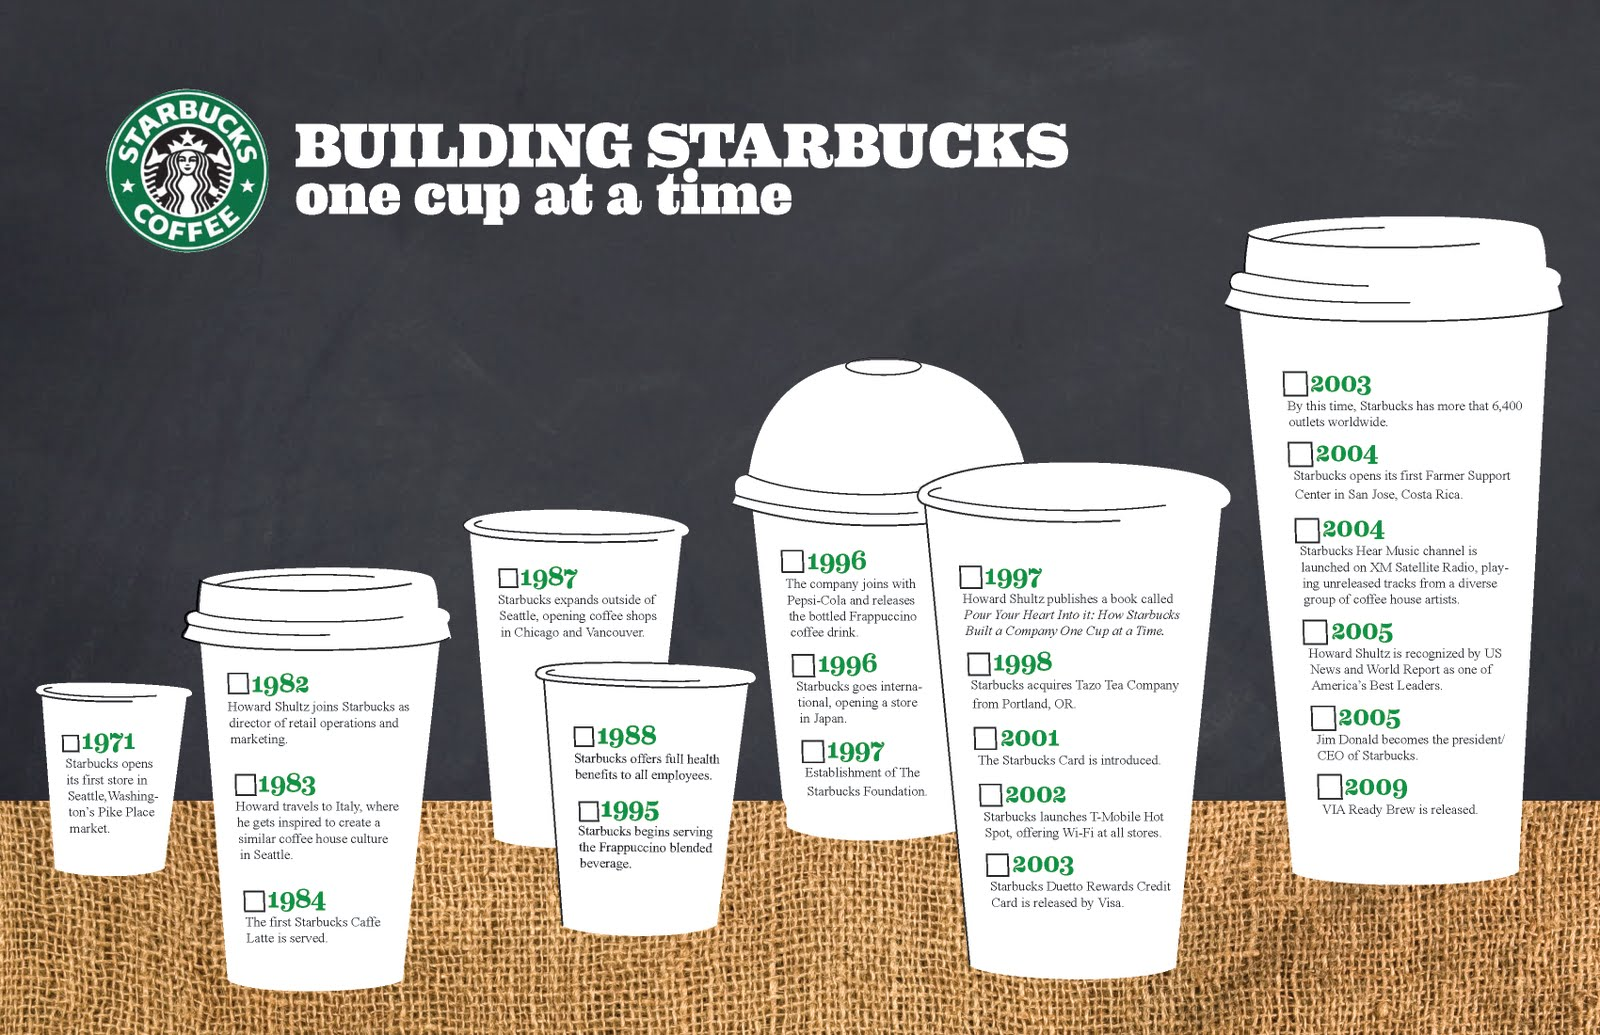 stackbucks assignment Starbucks were founded by three people in 1971  ln 1982, howard schultz joined starbucks he was the director of retail operations and.